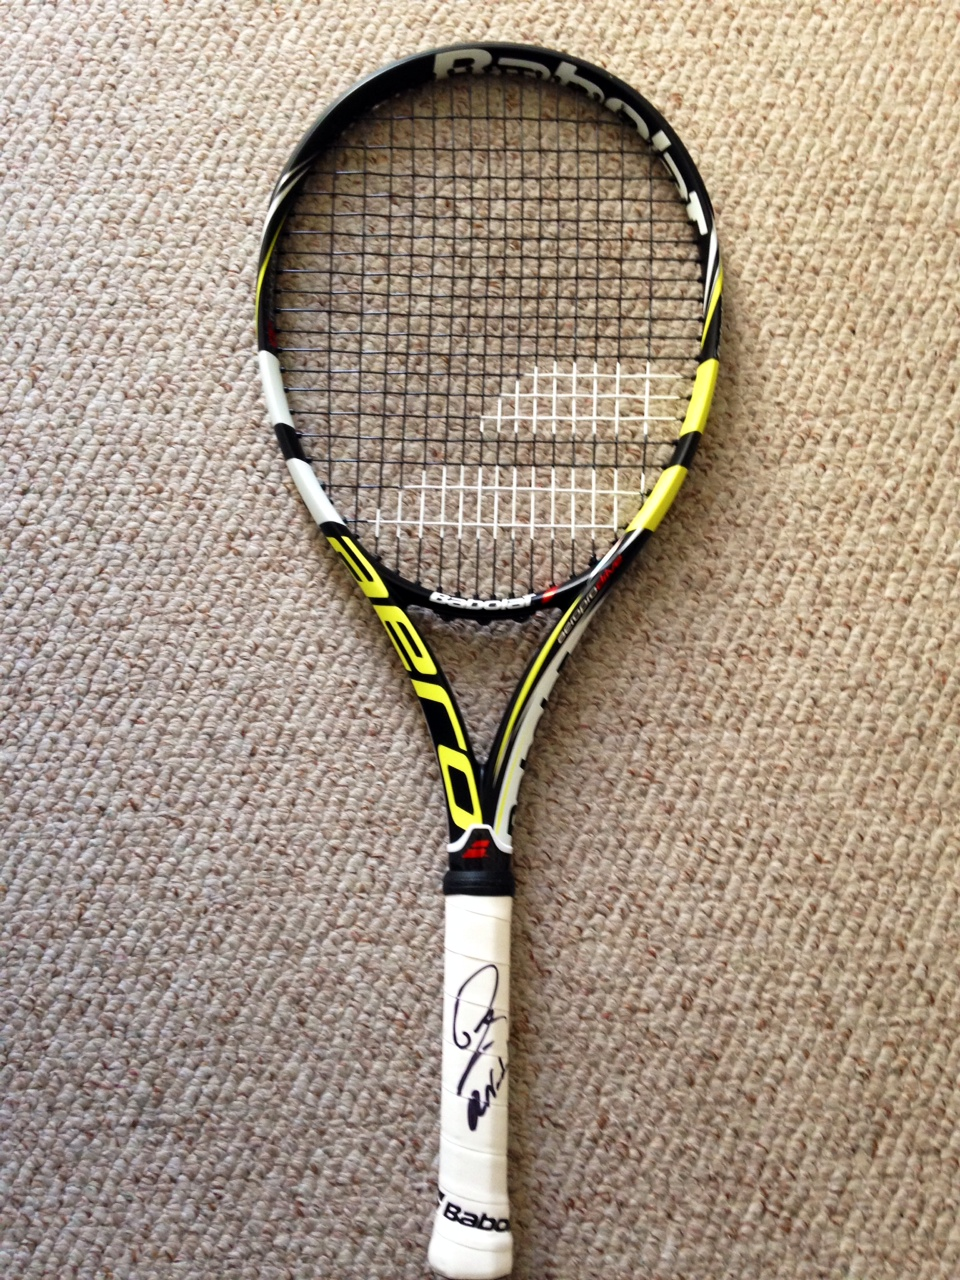 Charitybuzz: Take Home a Tennis Racket Signed by Rafael ...